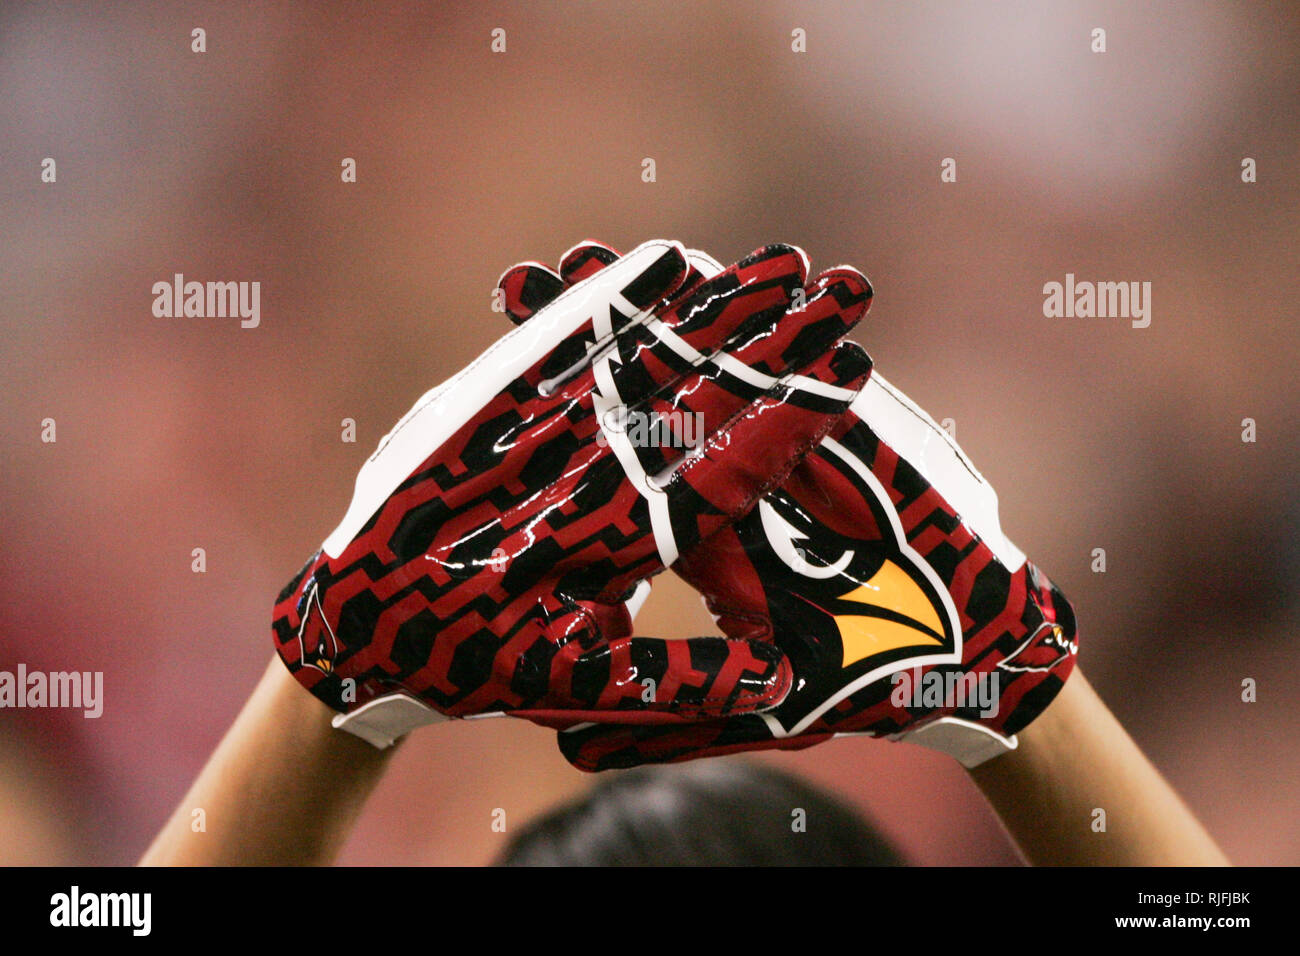 A Football Fan Holds His Hands Together While Wearing Nfl Wide Receiver Gloves With The Arizona Cardinals Logo Displayed Stock Photo Alamy